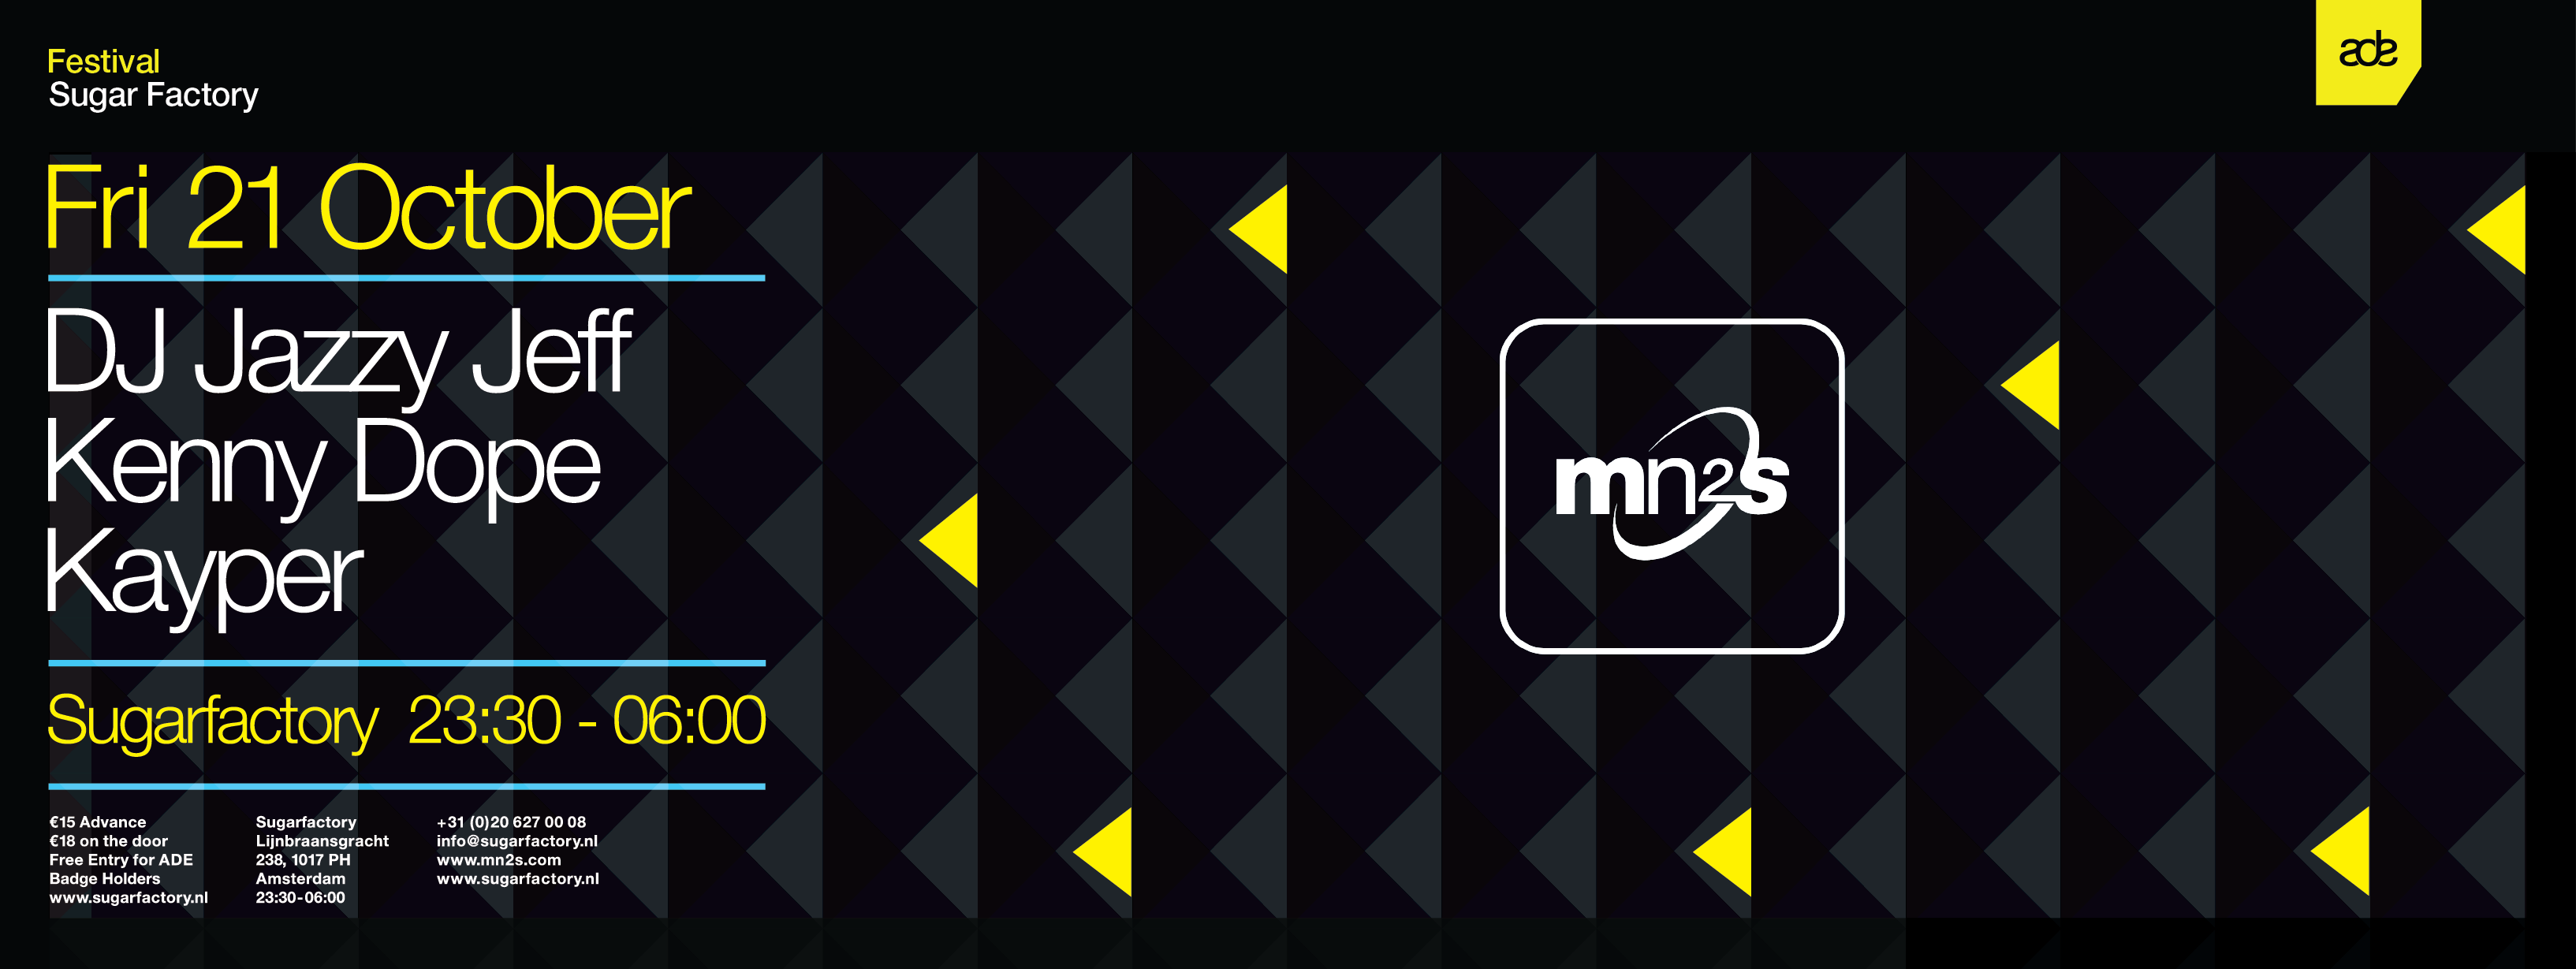 facebook event photo template - mn2s presents dj jazzy jeff kenny dope and kayper at ade